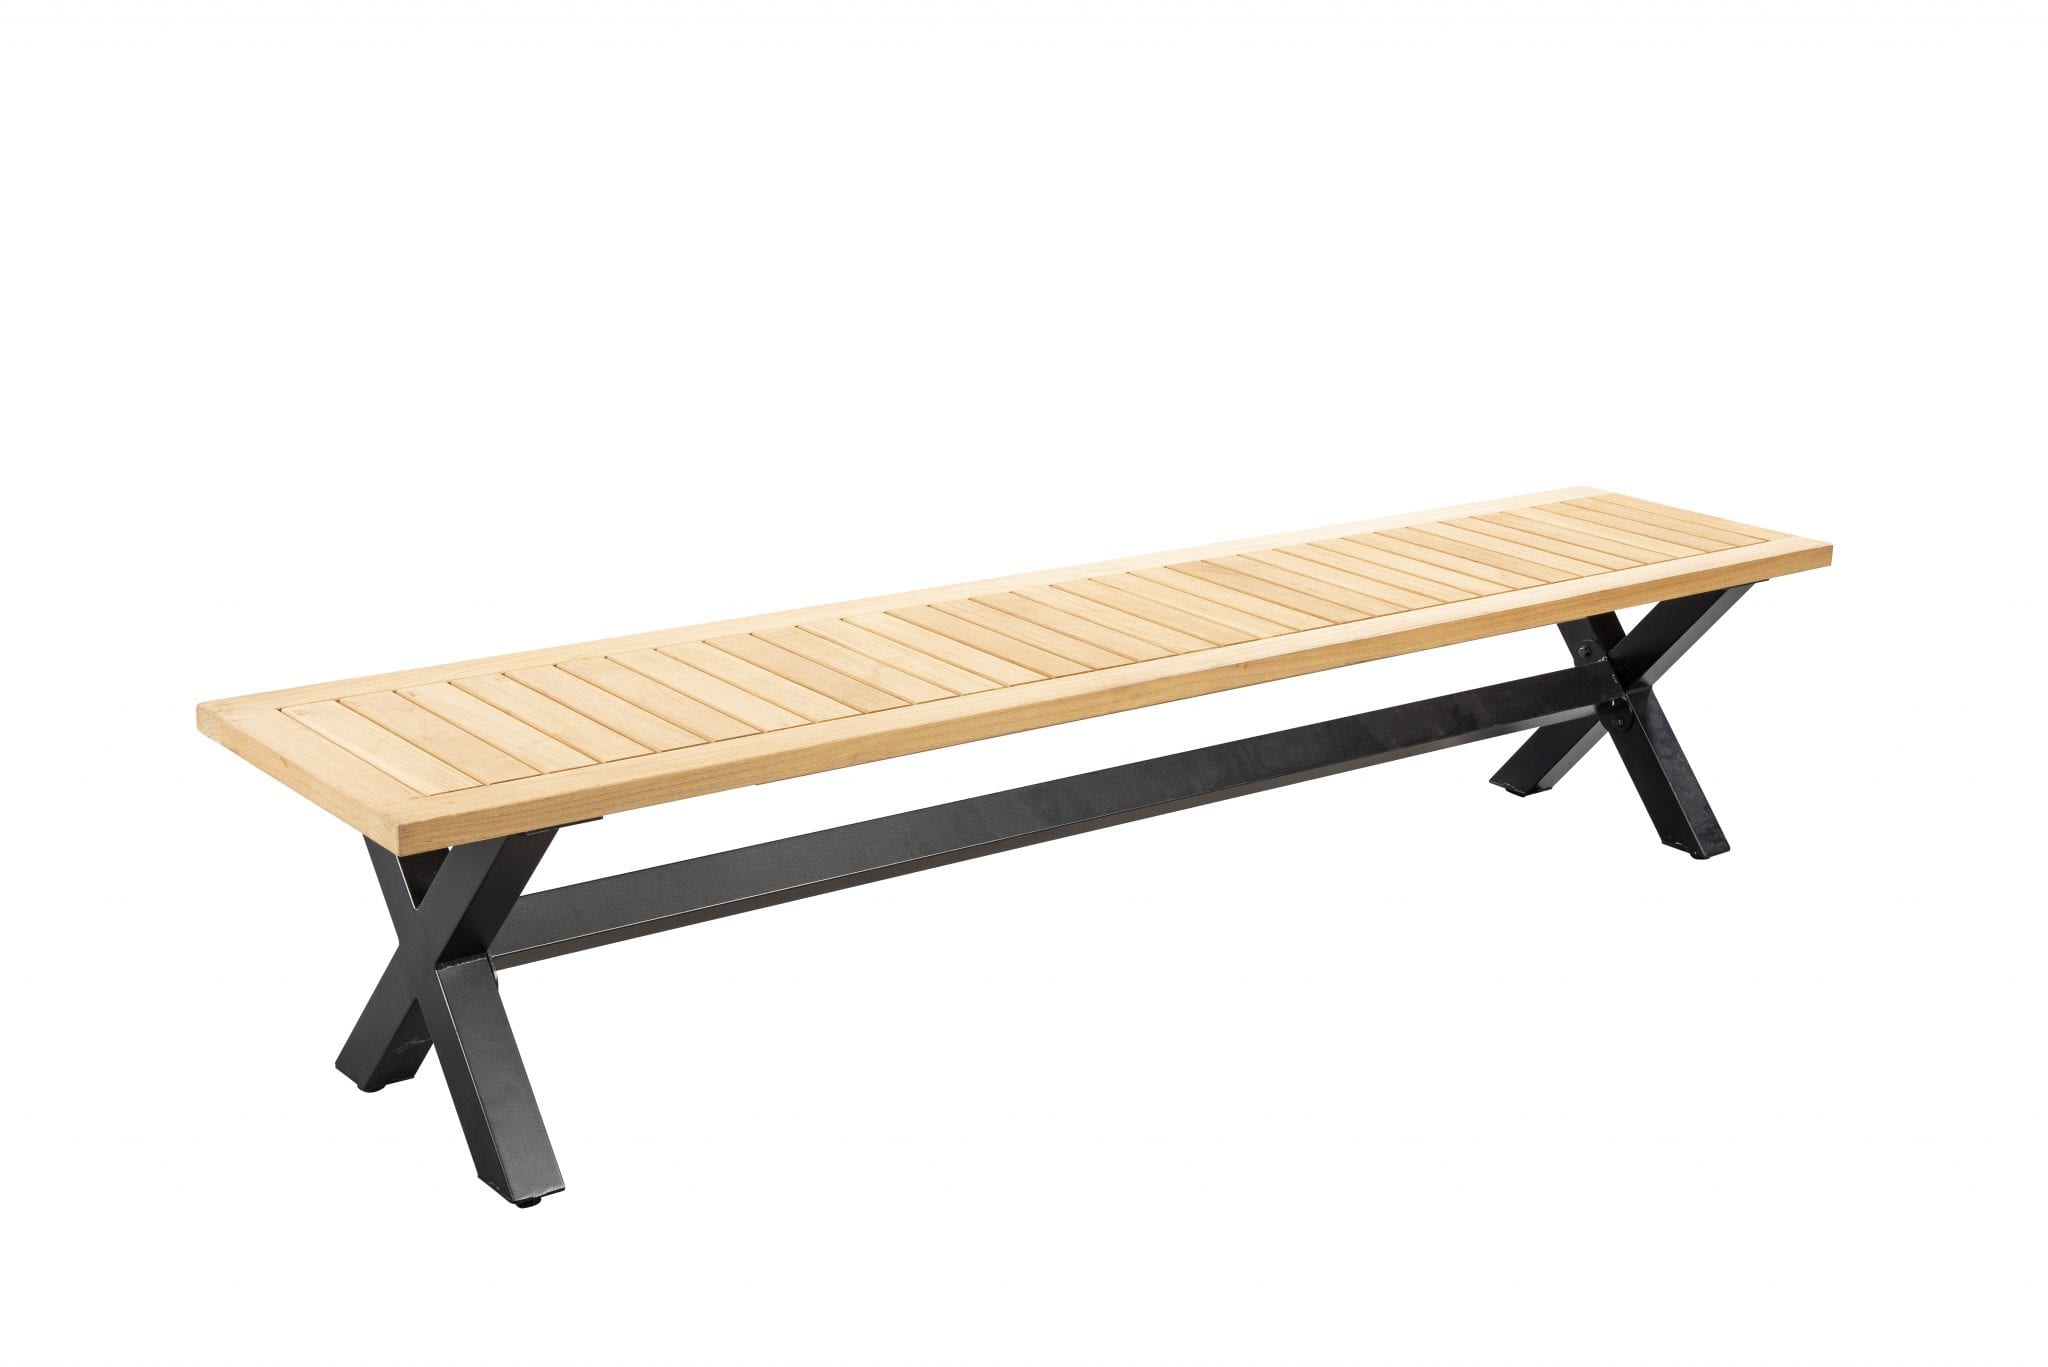 Wakai 217x45 bench - dark grey | Yoi Furniture